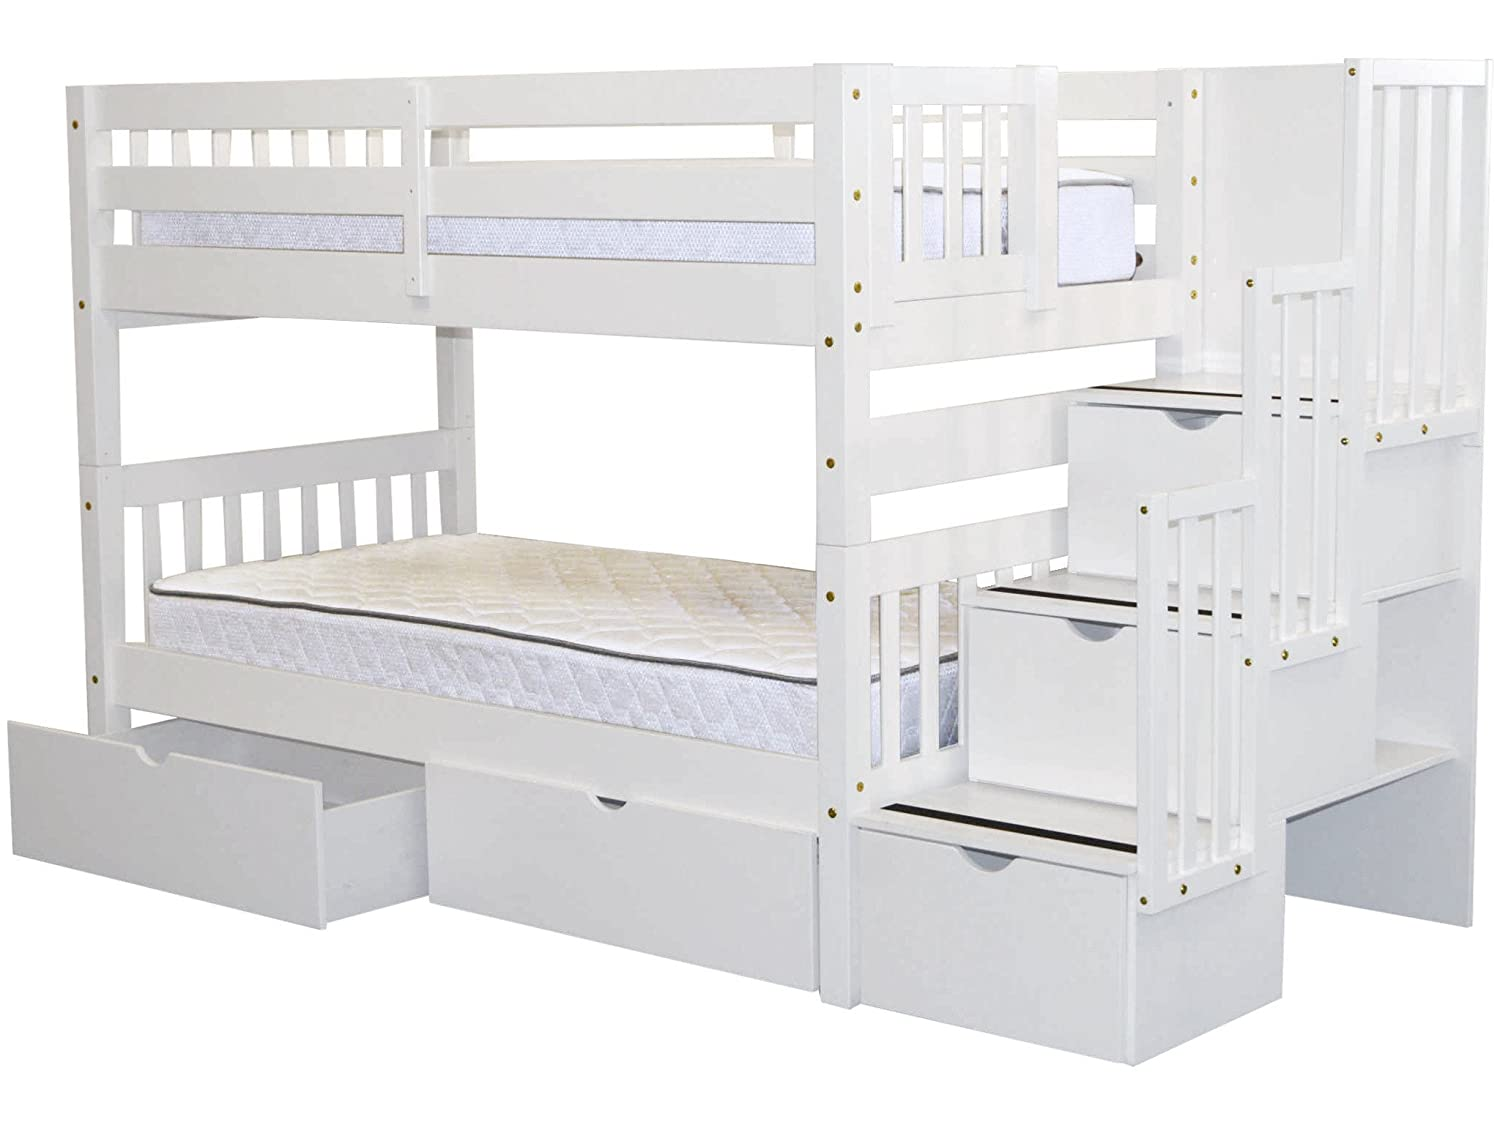 Stairway Bunk Beds Twin over Twin with 3 Drawers in the Steps and 2 Under Bed Drawers, White